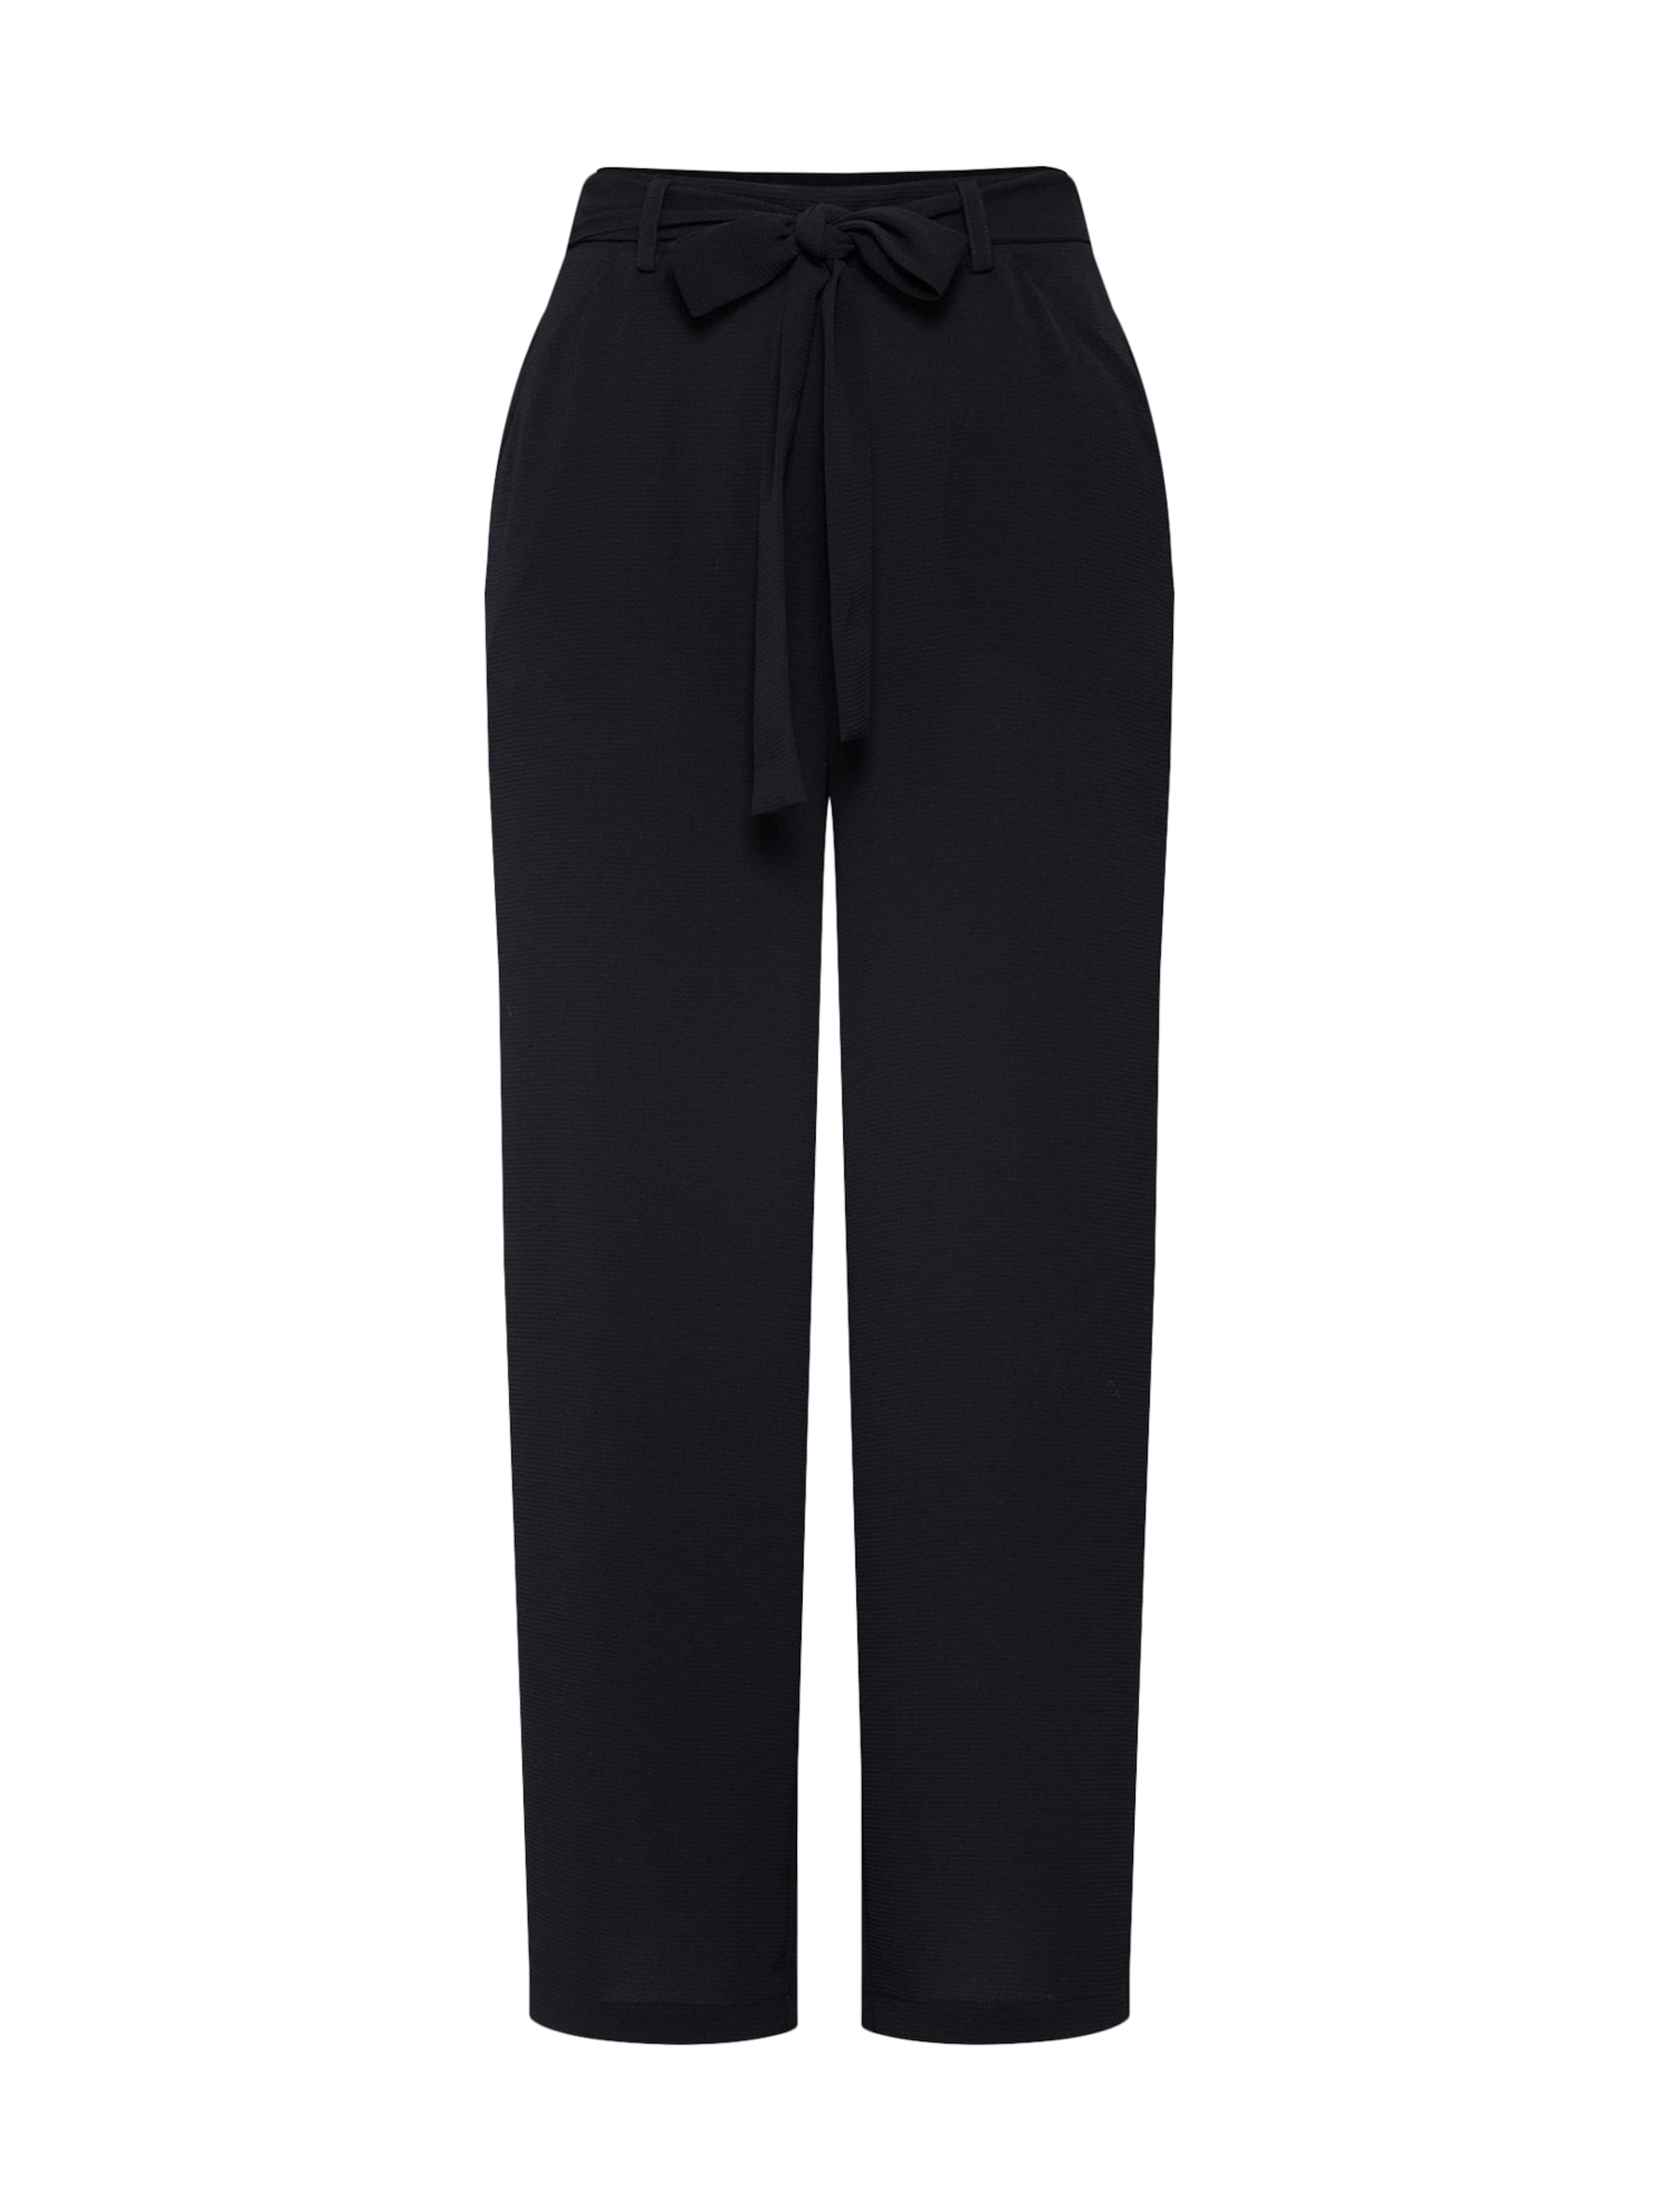 Pantalon Pantalon 'nellie' Pieces En Noir 'nellie' En Pieces 5Lc34RjAq